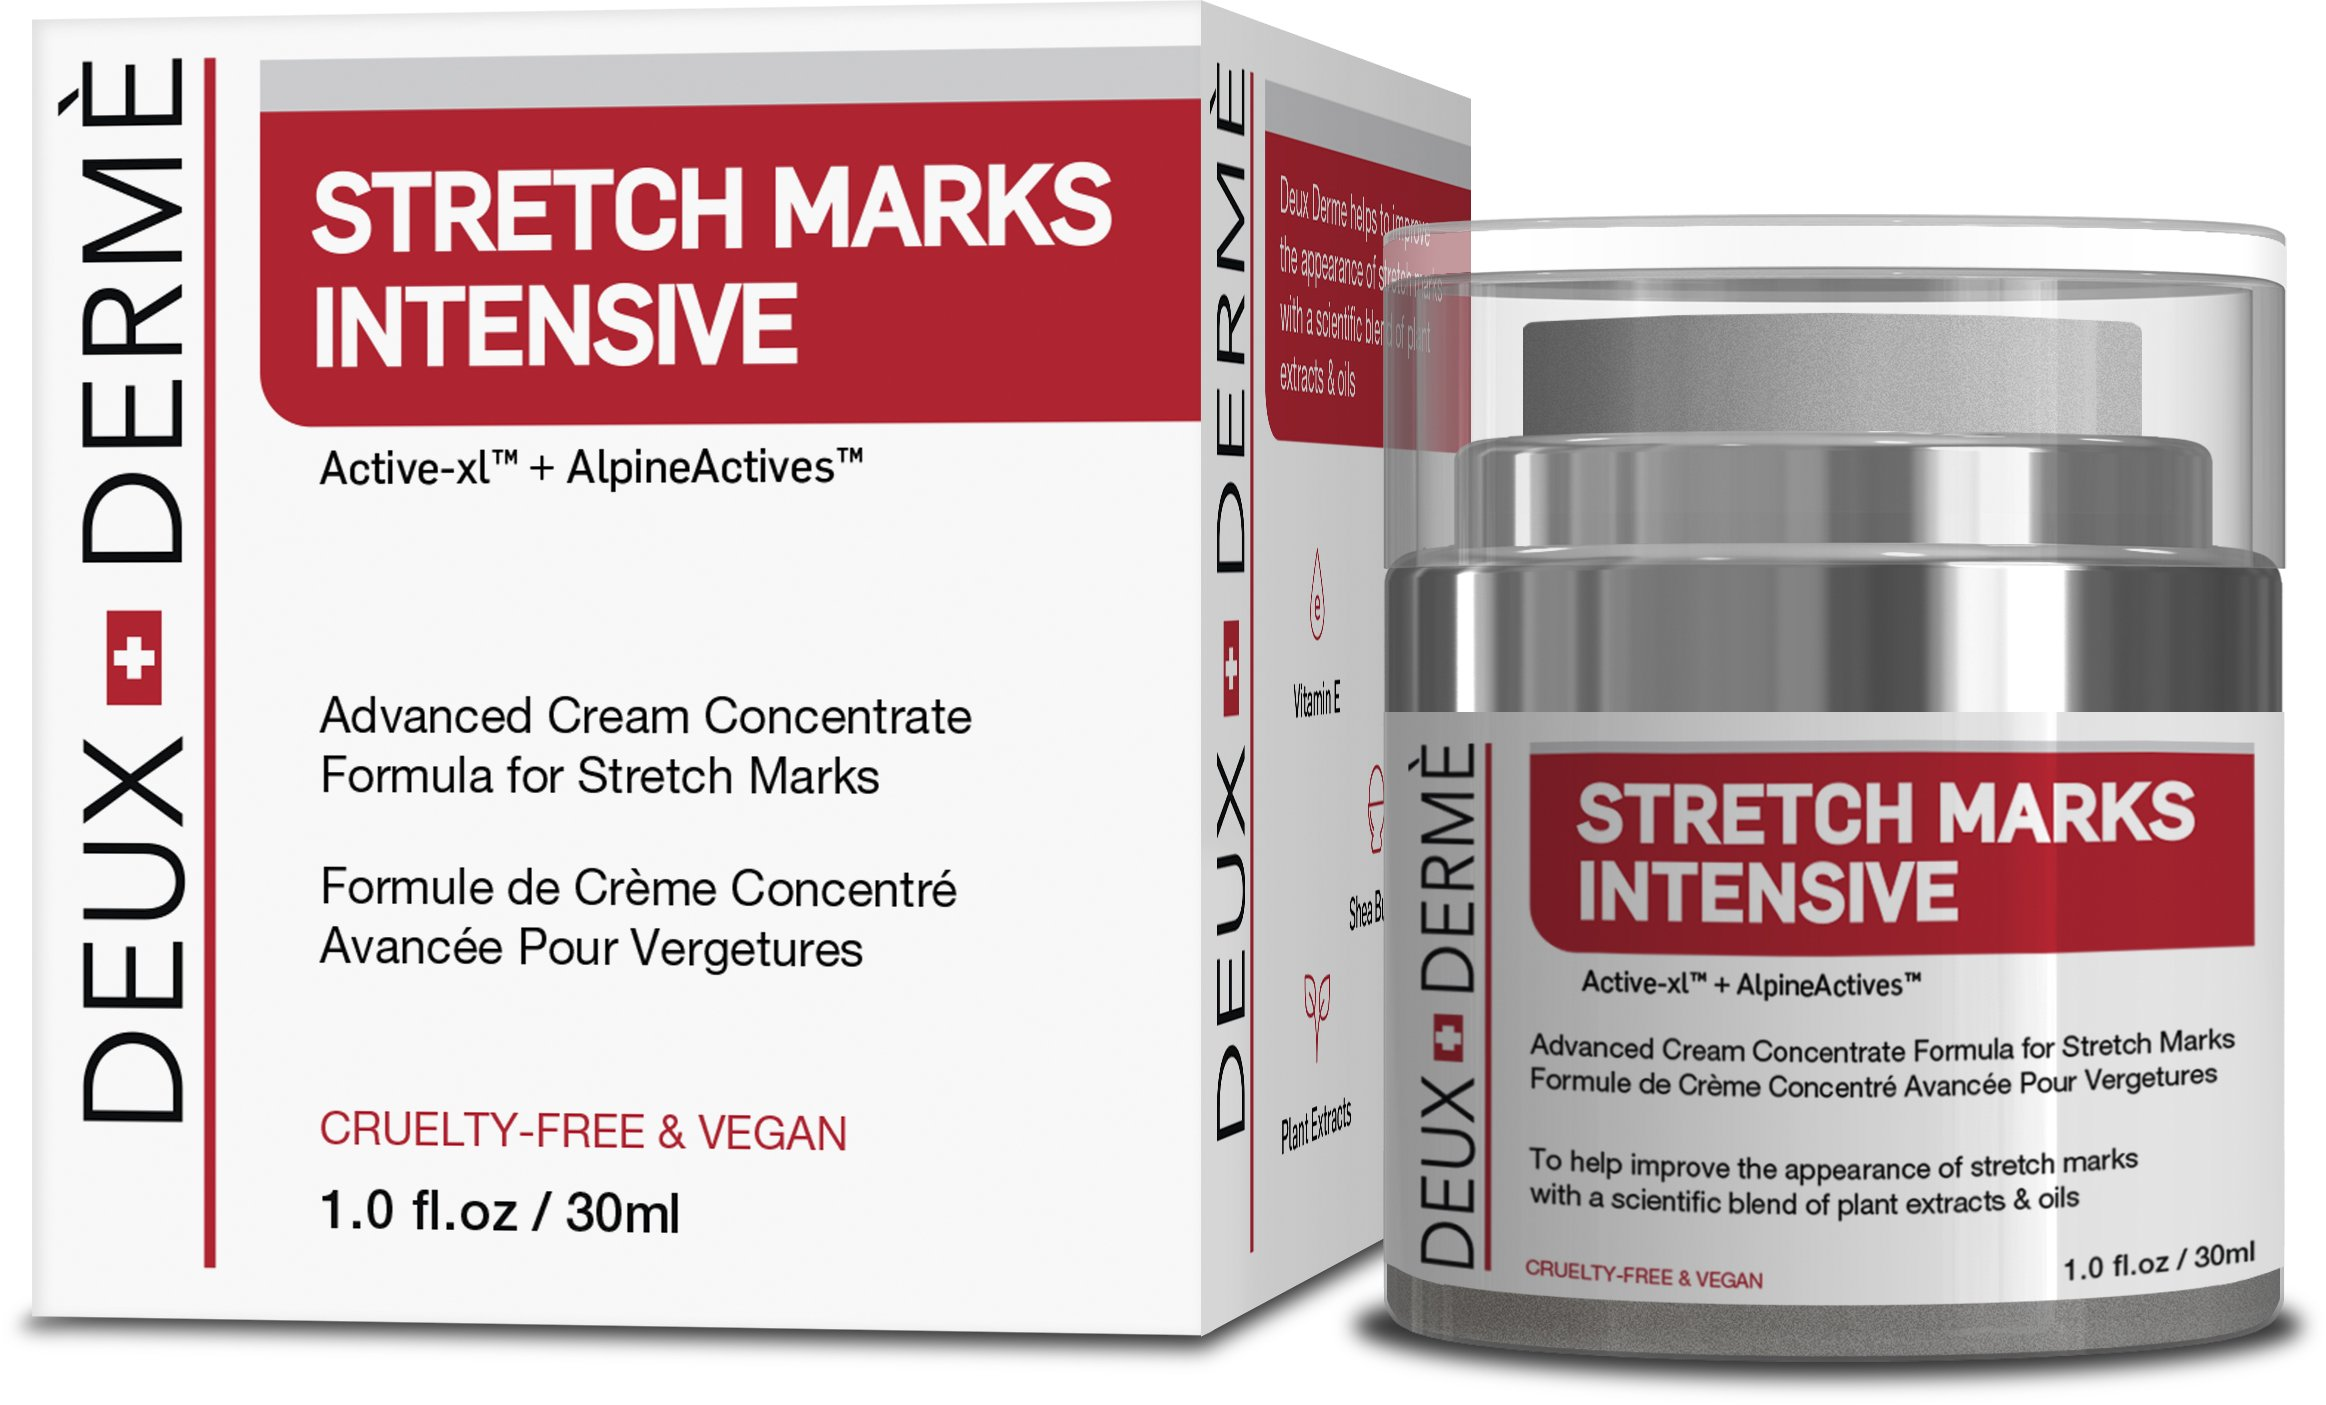 Deux Derme - Stretch Mark Intensive Cream With Vitamin E, Shea, Cocoa Butter for Pregnancy, Weight Gain (30ml)